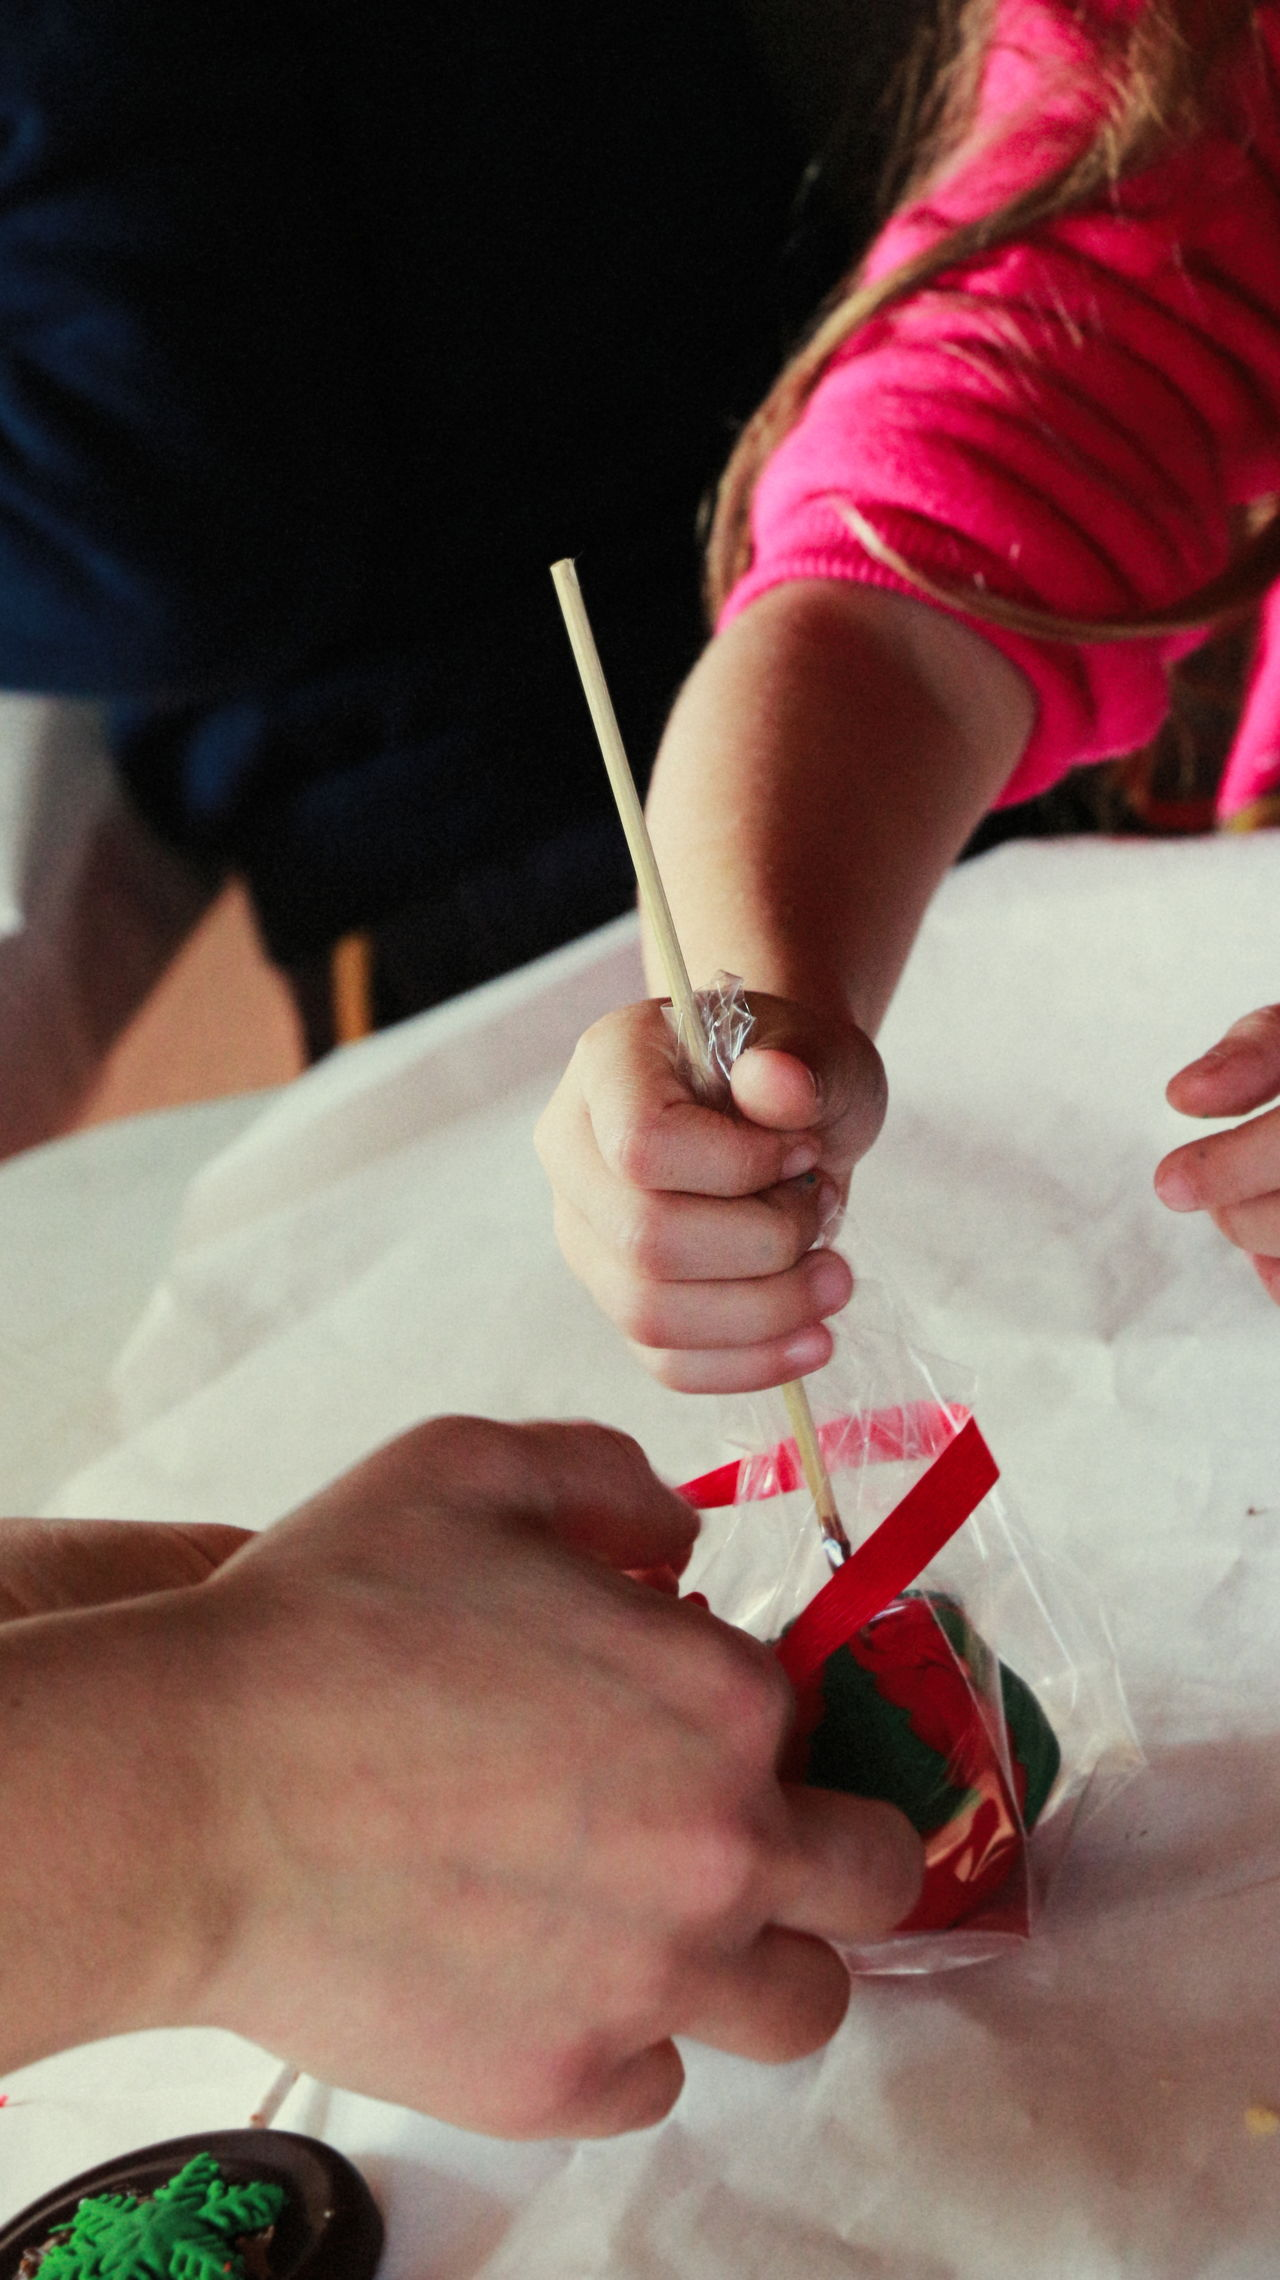 playing with marble Childern Childresns Lo Creativity Human Hand Indoors  Love Part Of Small And Swift